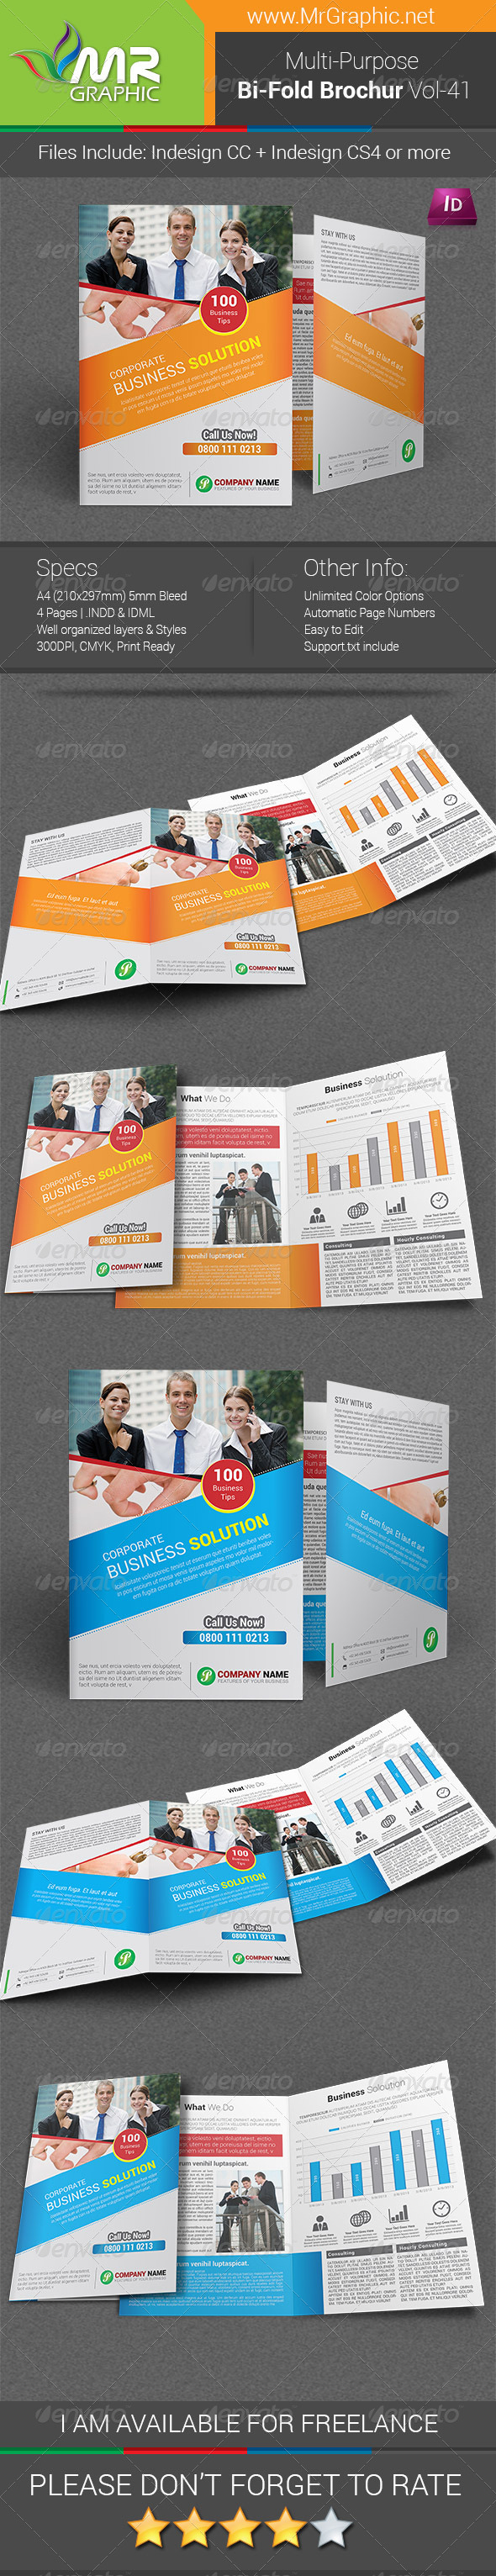 Multipurpose Bi-fold Brochure Template Vol-41 - Corporate Brochures